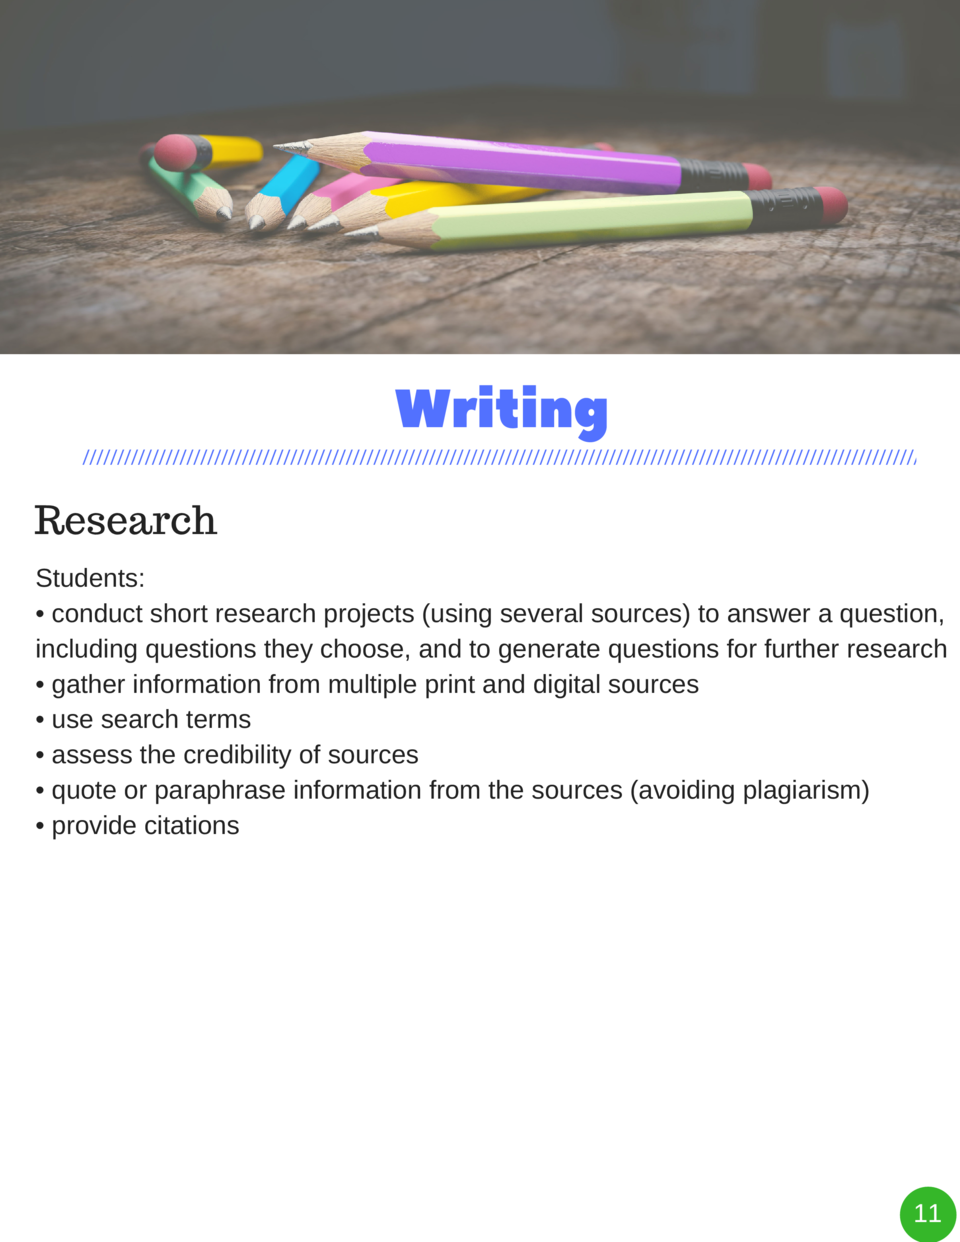 Writing Research Students      conduct short research projects  using several sources  to answer a question, including que...